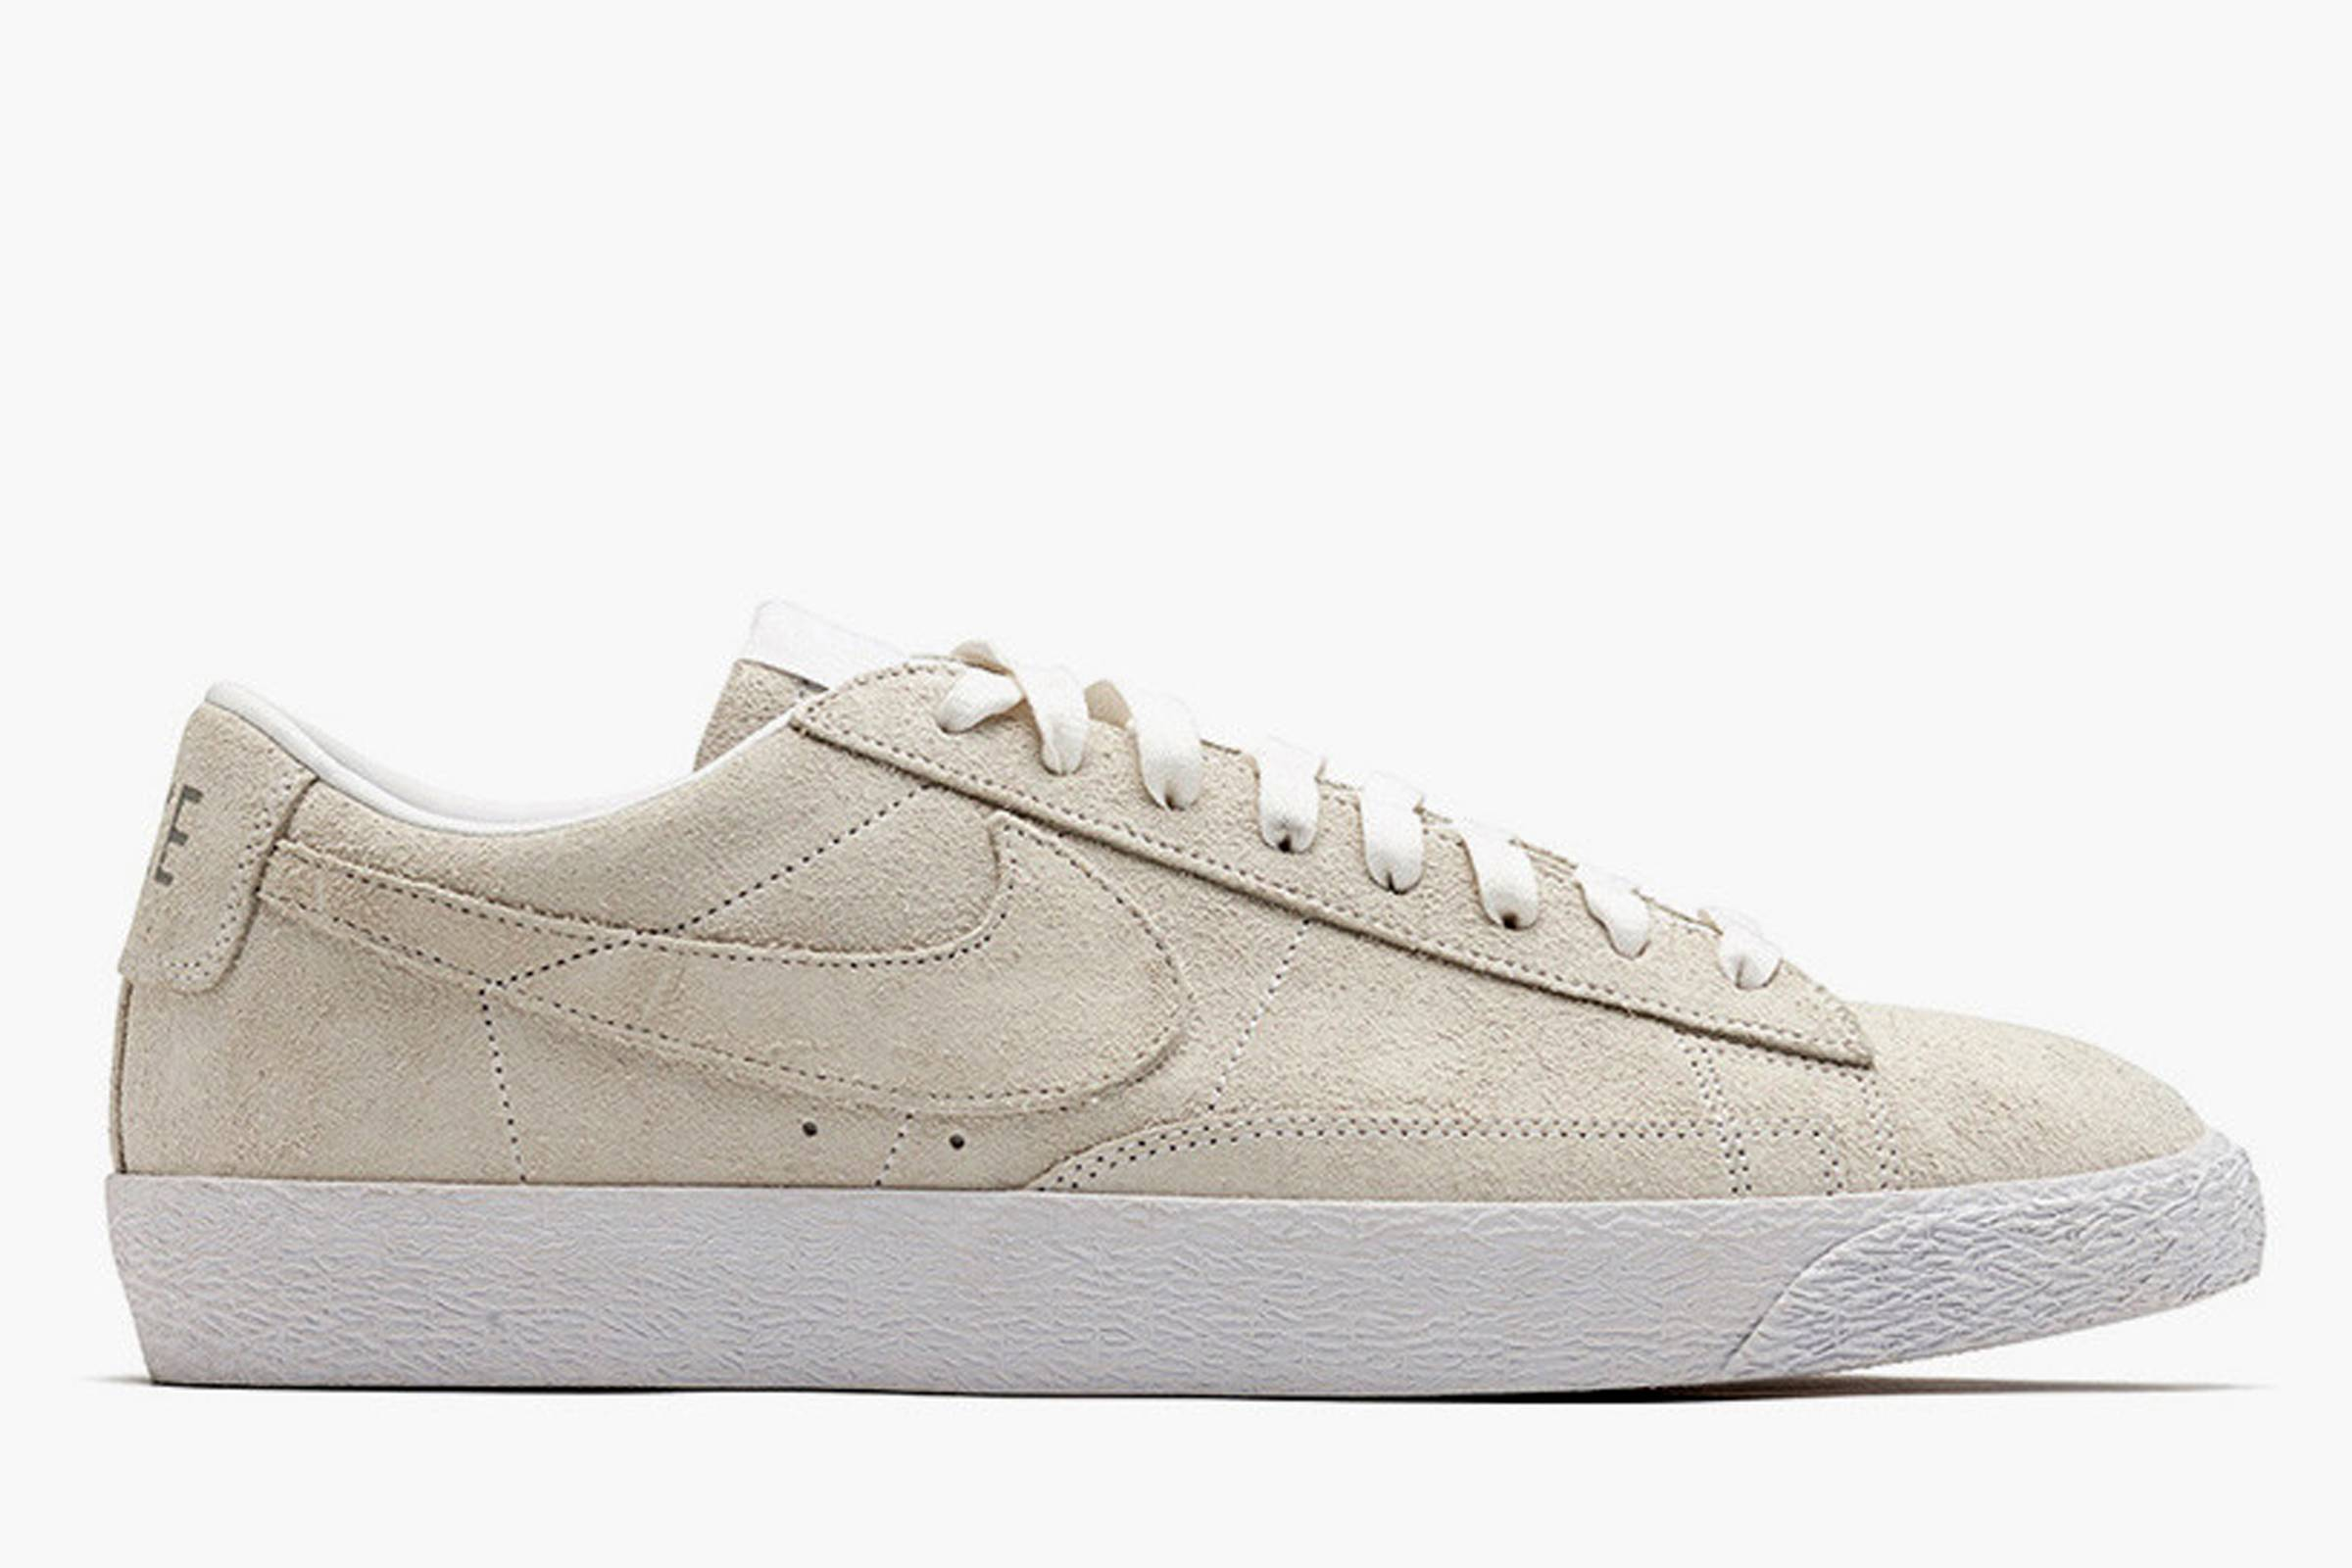 Fragment Design x Nike Blazer Low SP 2014